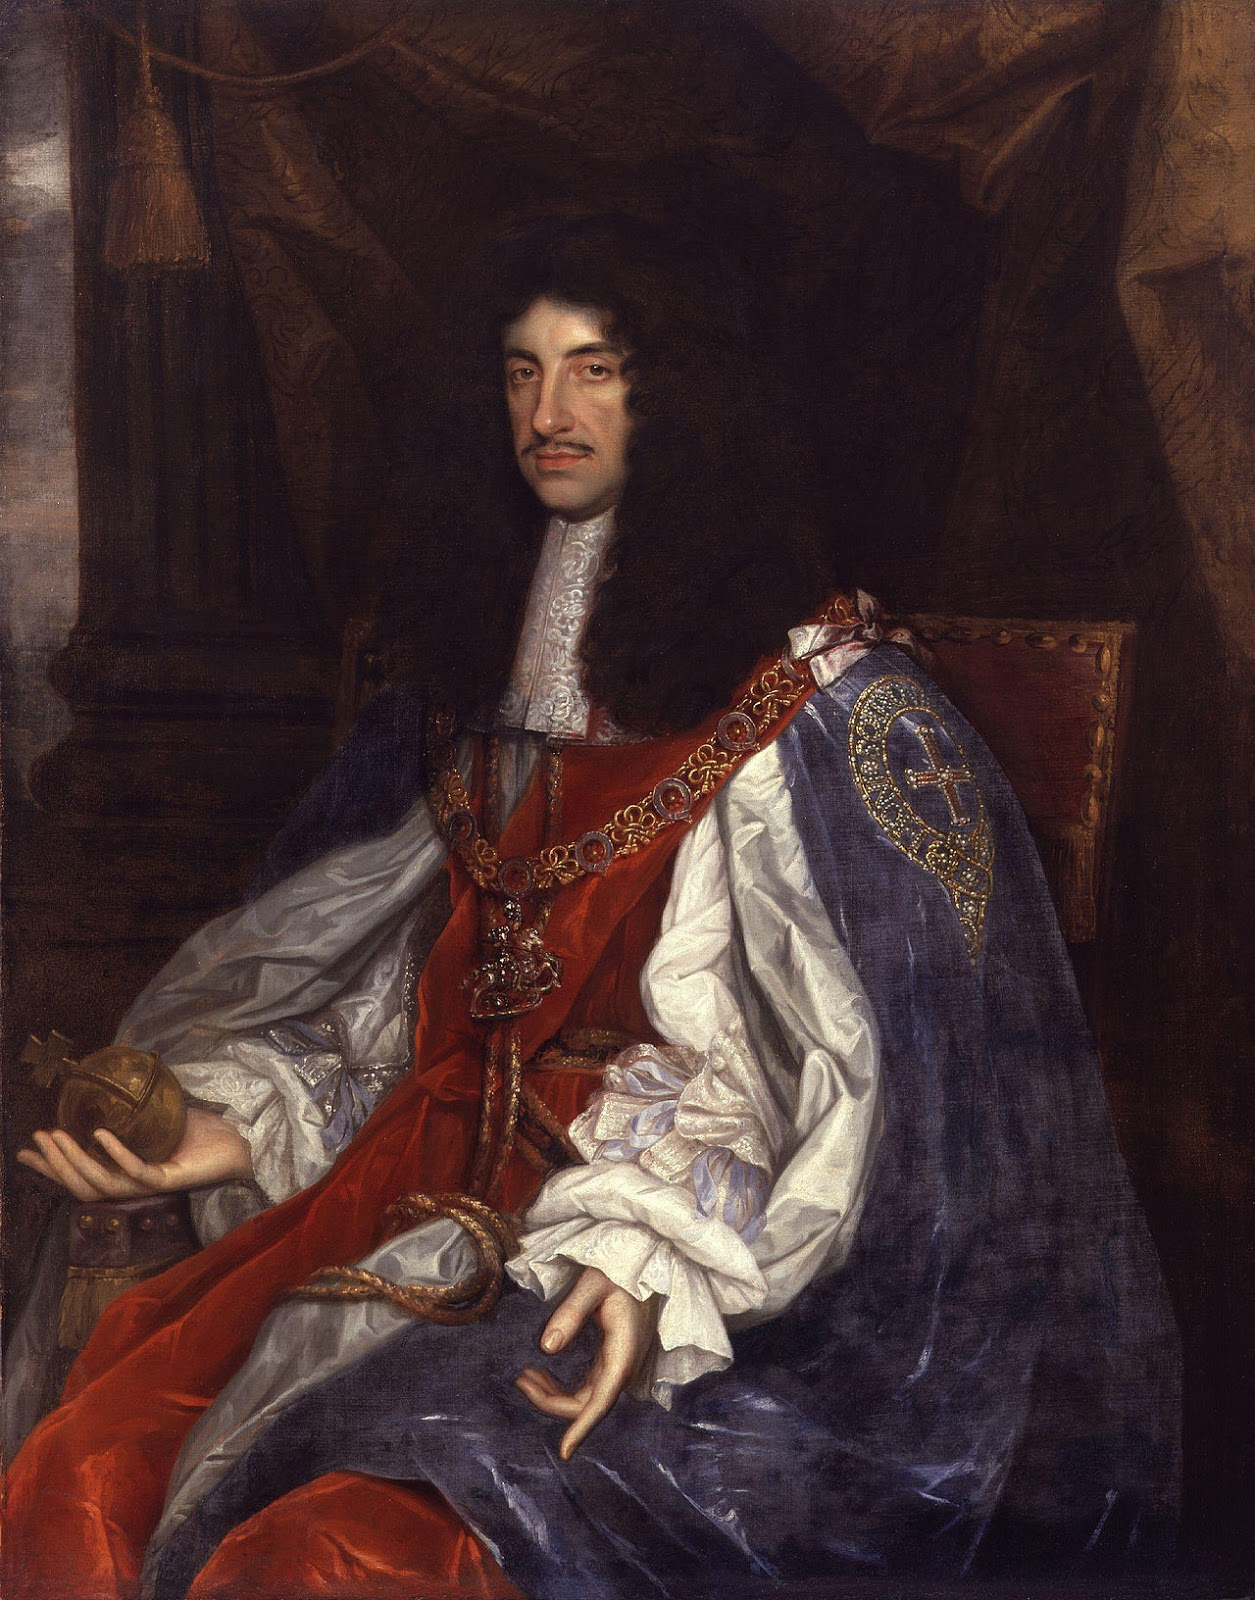 King Charles II banned coffee shops in England in 1675. He was paranoid people were using the coffee houses to conspire against him.